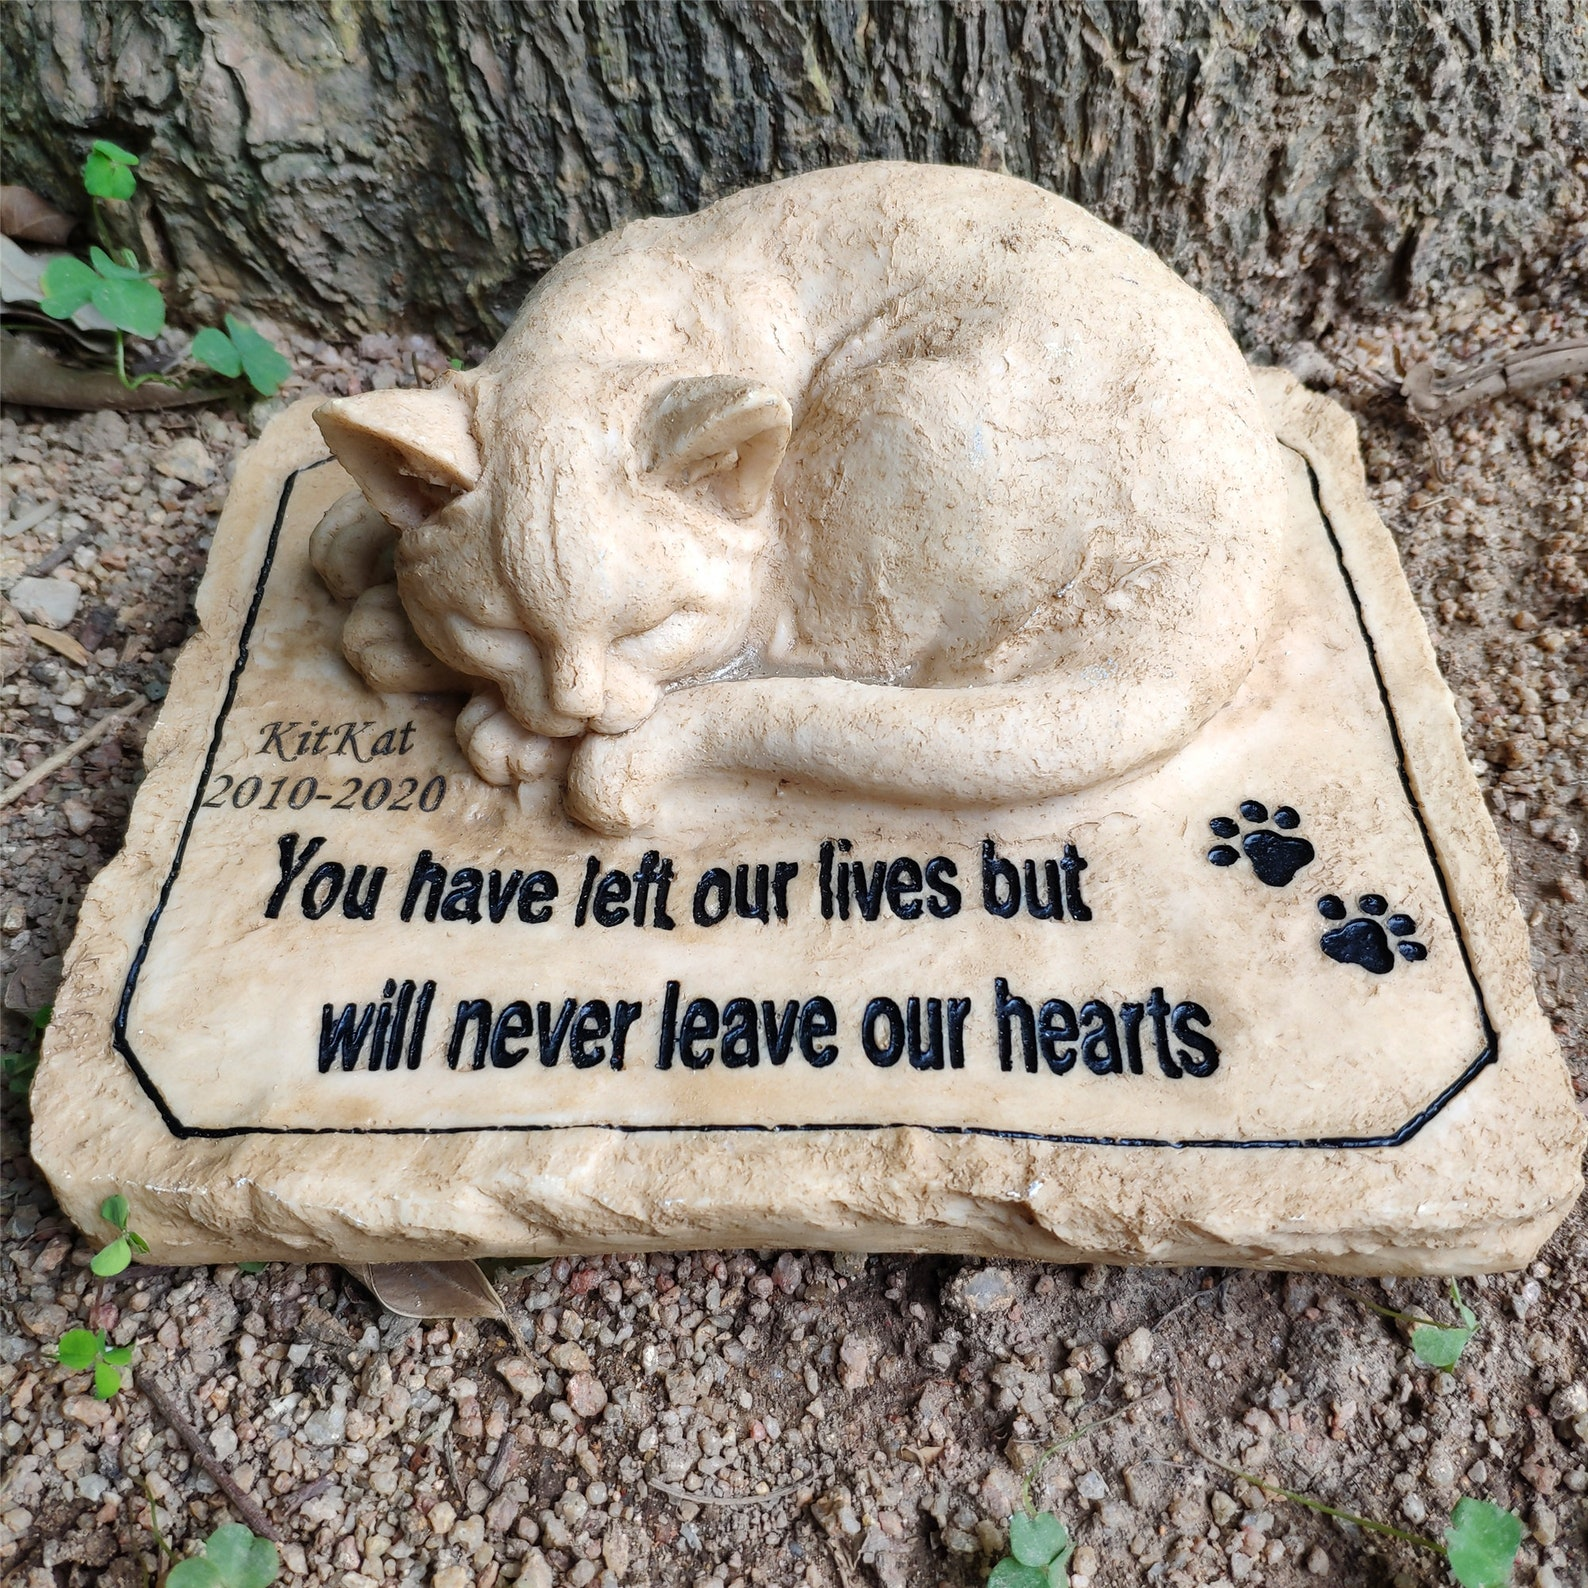 The First Pet Cemetery in America